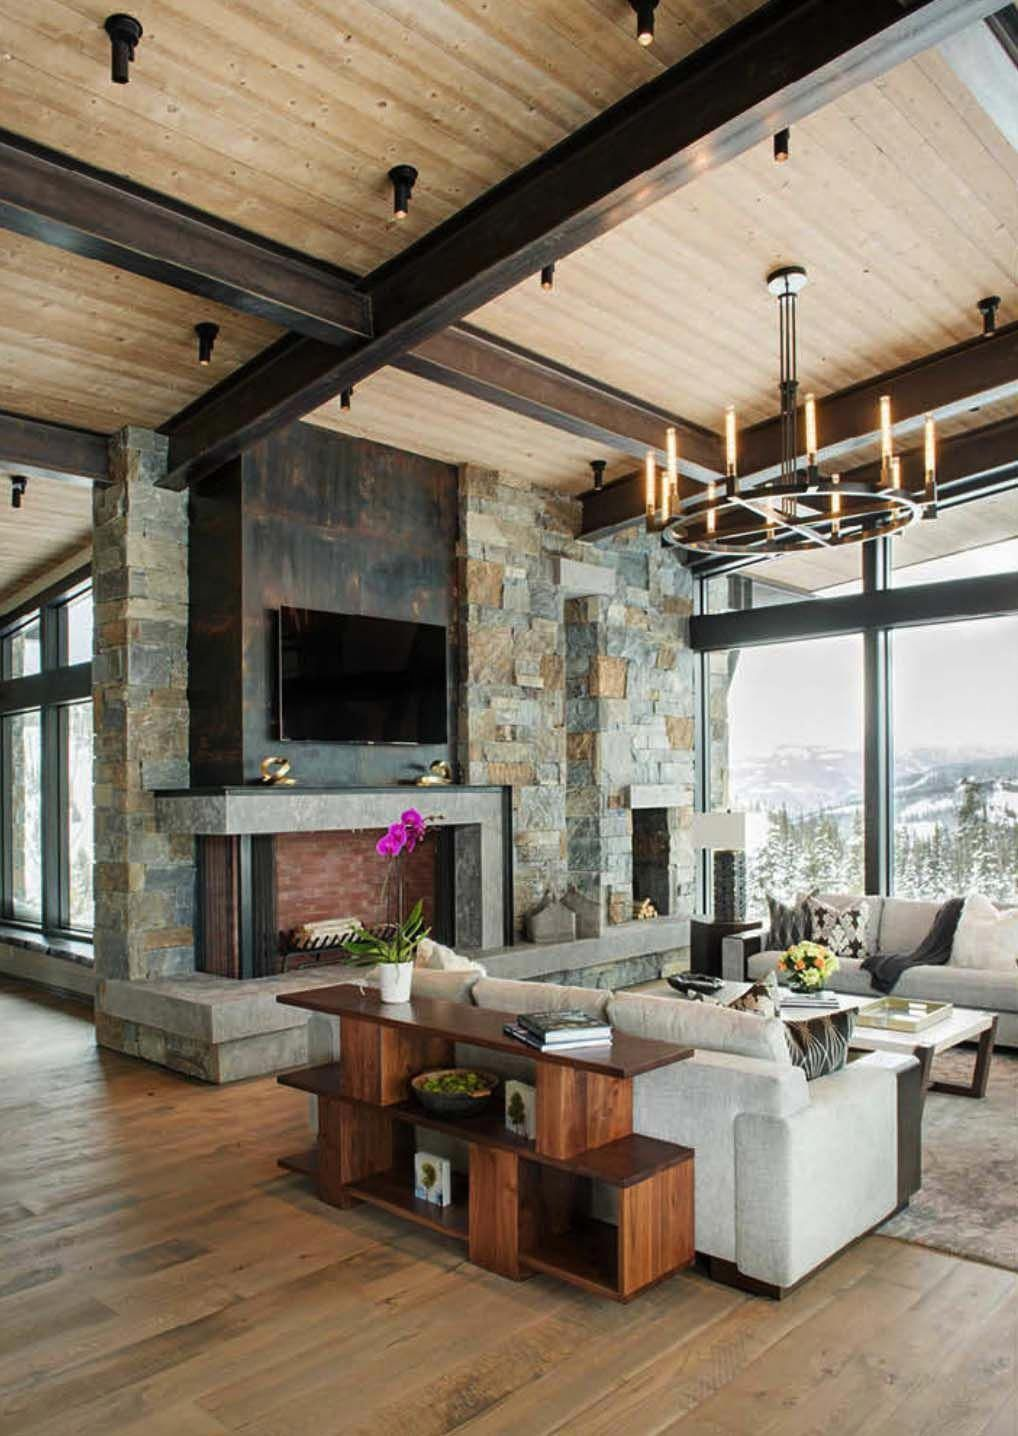 Kitcheninstall An American Style Kitchen With A Very Desirable Layout Html Saleprice 44 Rustic Living Room Modern Rustic Homes Rustic Living